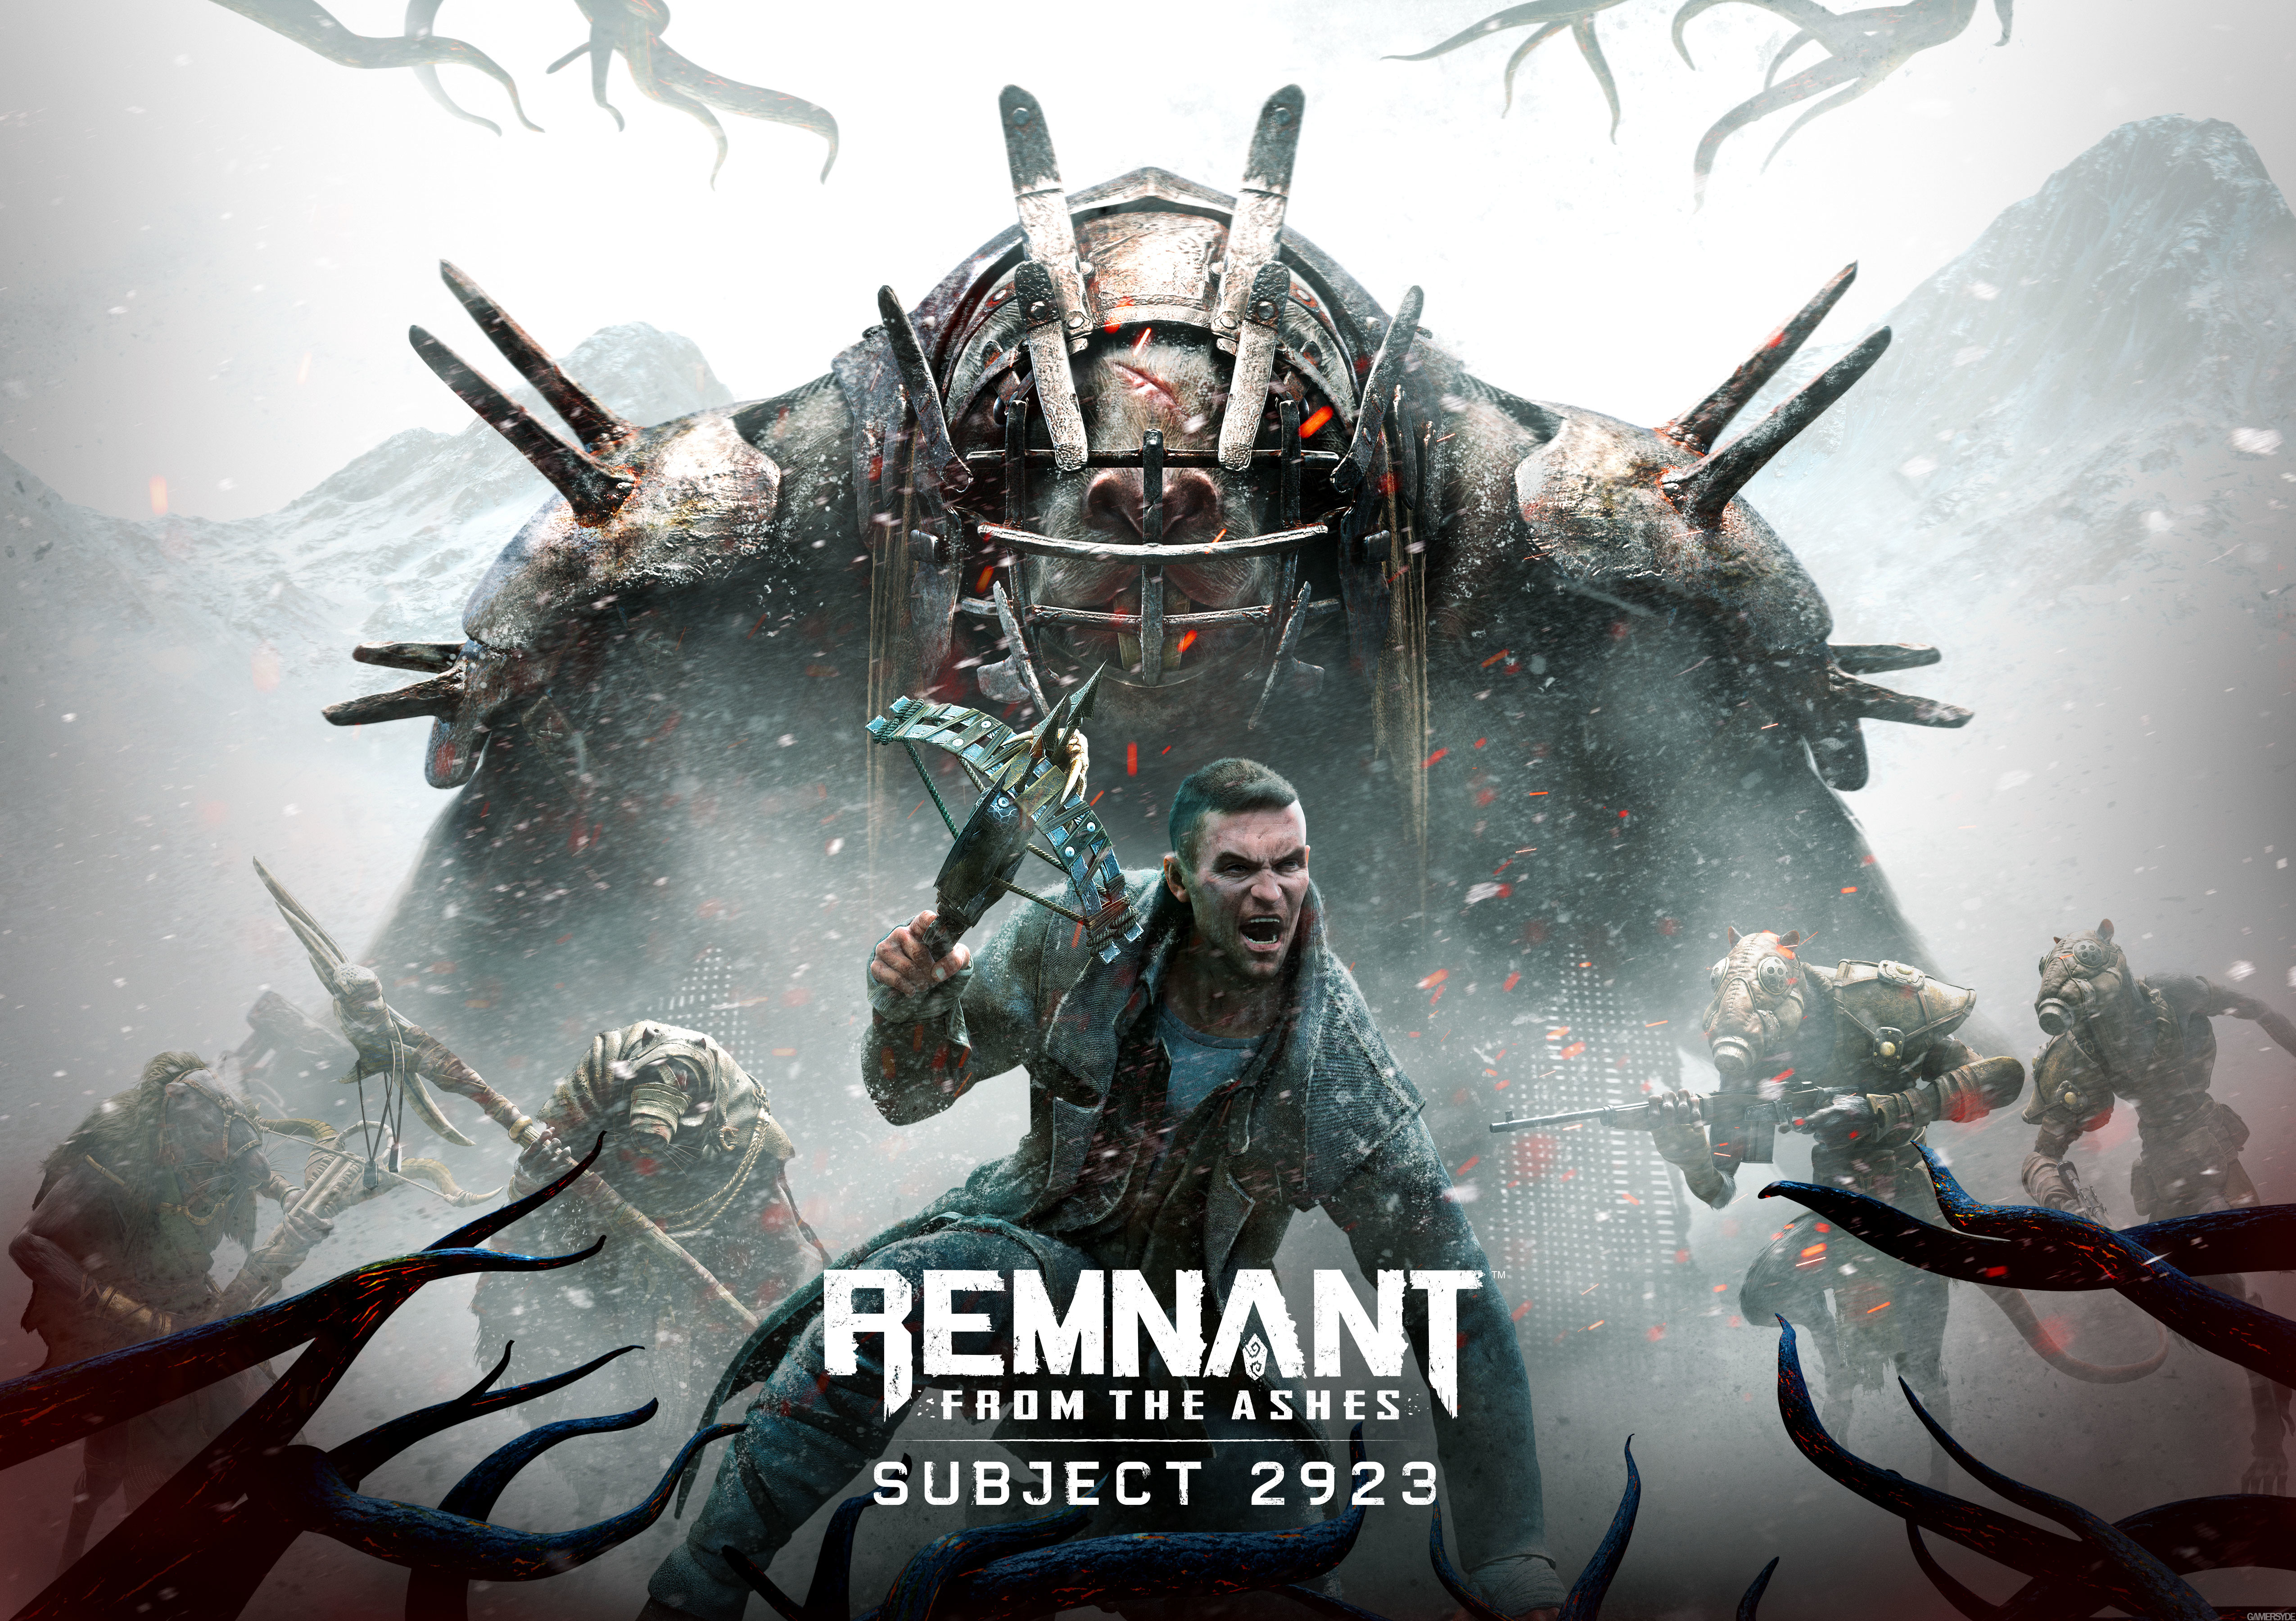 remnant from the ashes subject 2923 1596988914 - Remnant From The Ashes Subject 2923 - Remnant From The Ashes Subject 2923 4k wallpapers